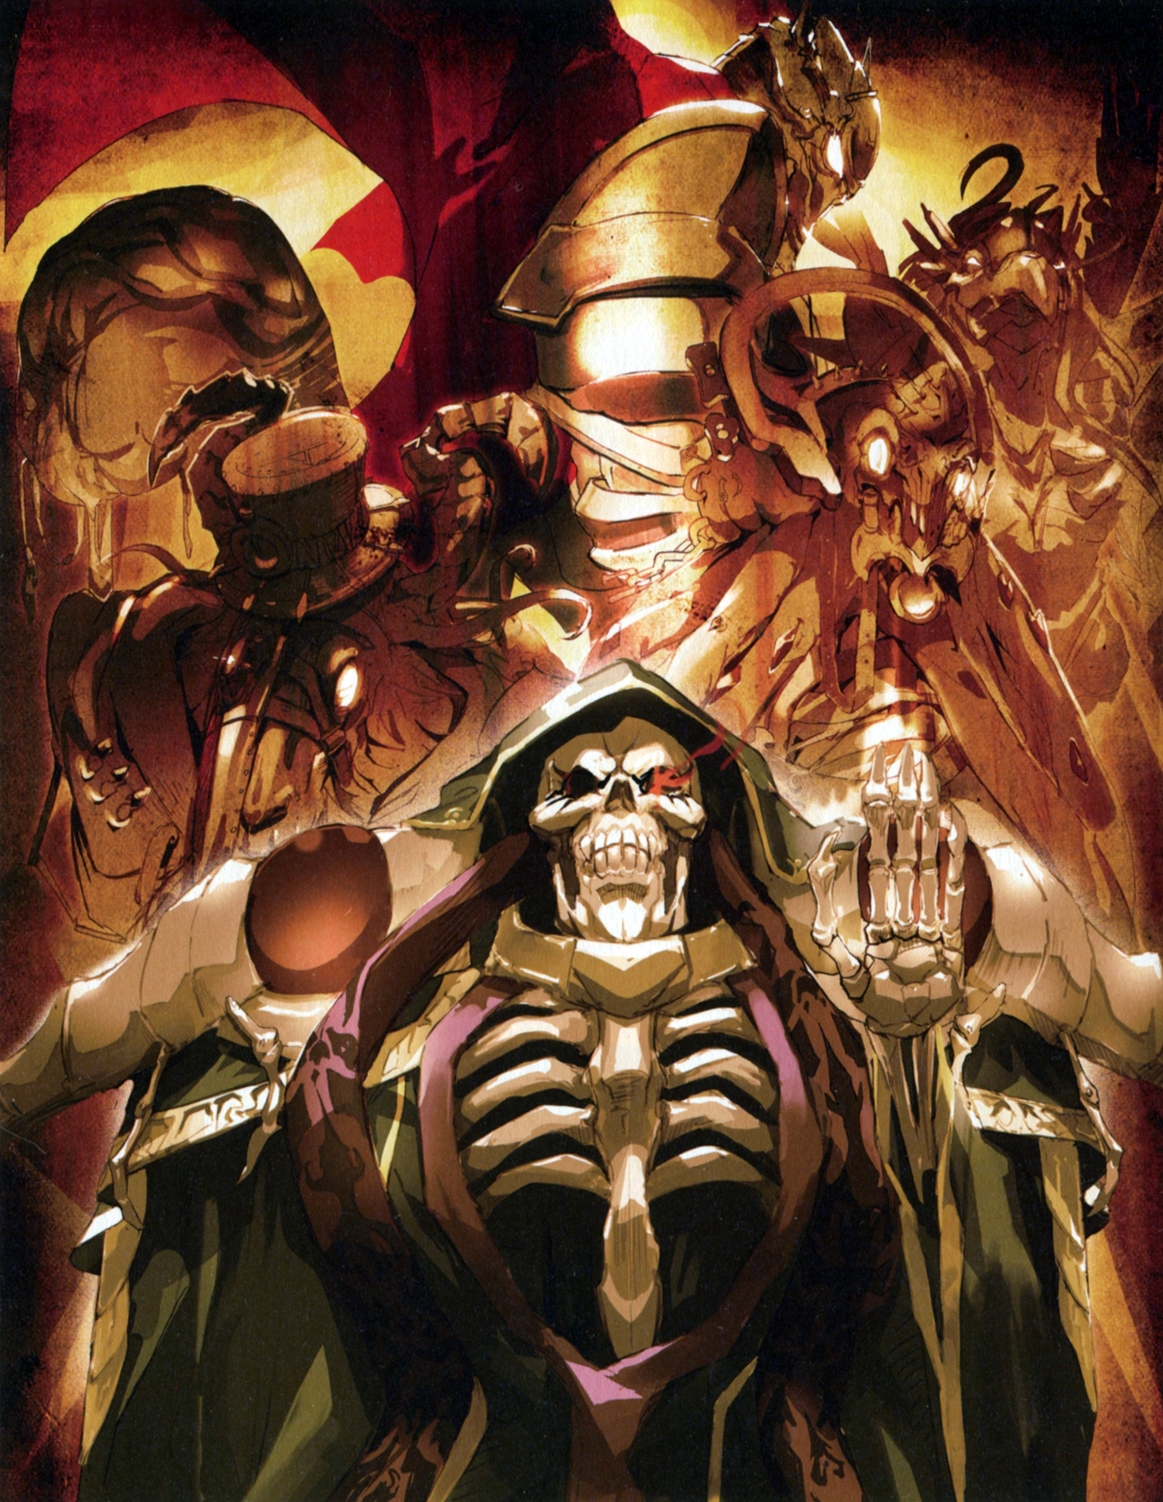 Ainz Ooal Gown (Guild) | Overlord Wiki | FANDOM powered by Wikia